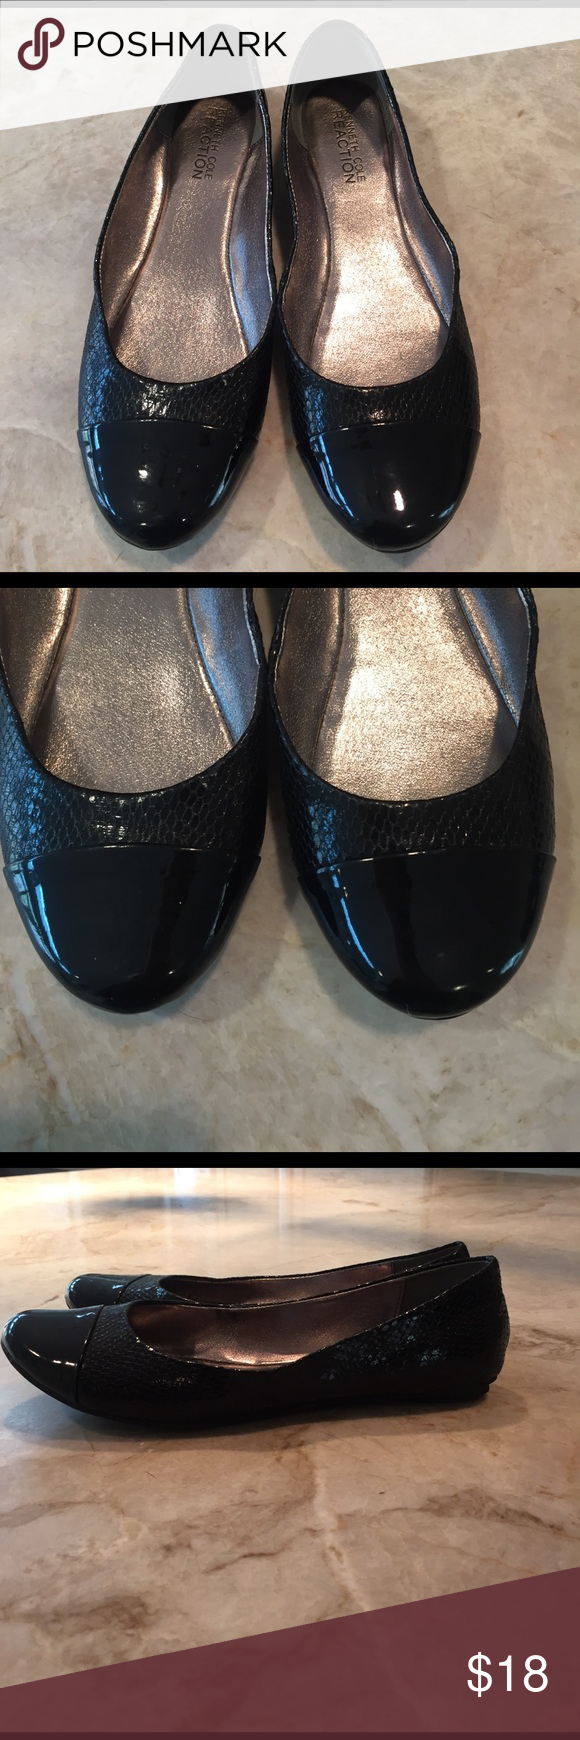 Kenneth Cole reaction ballet flats Black patent capped ballet flats Kenneth Cole Reaction Shoes Flats & Loafers